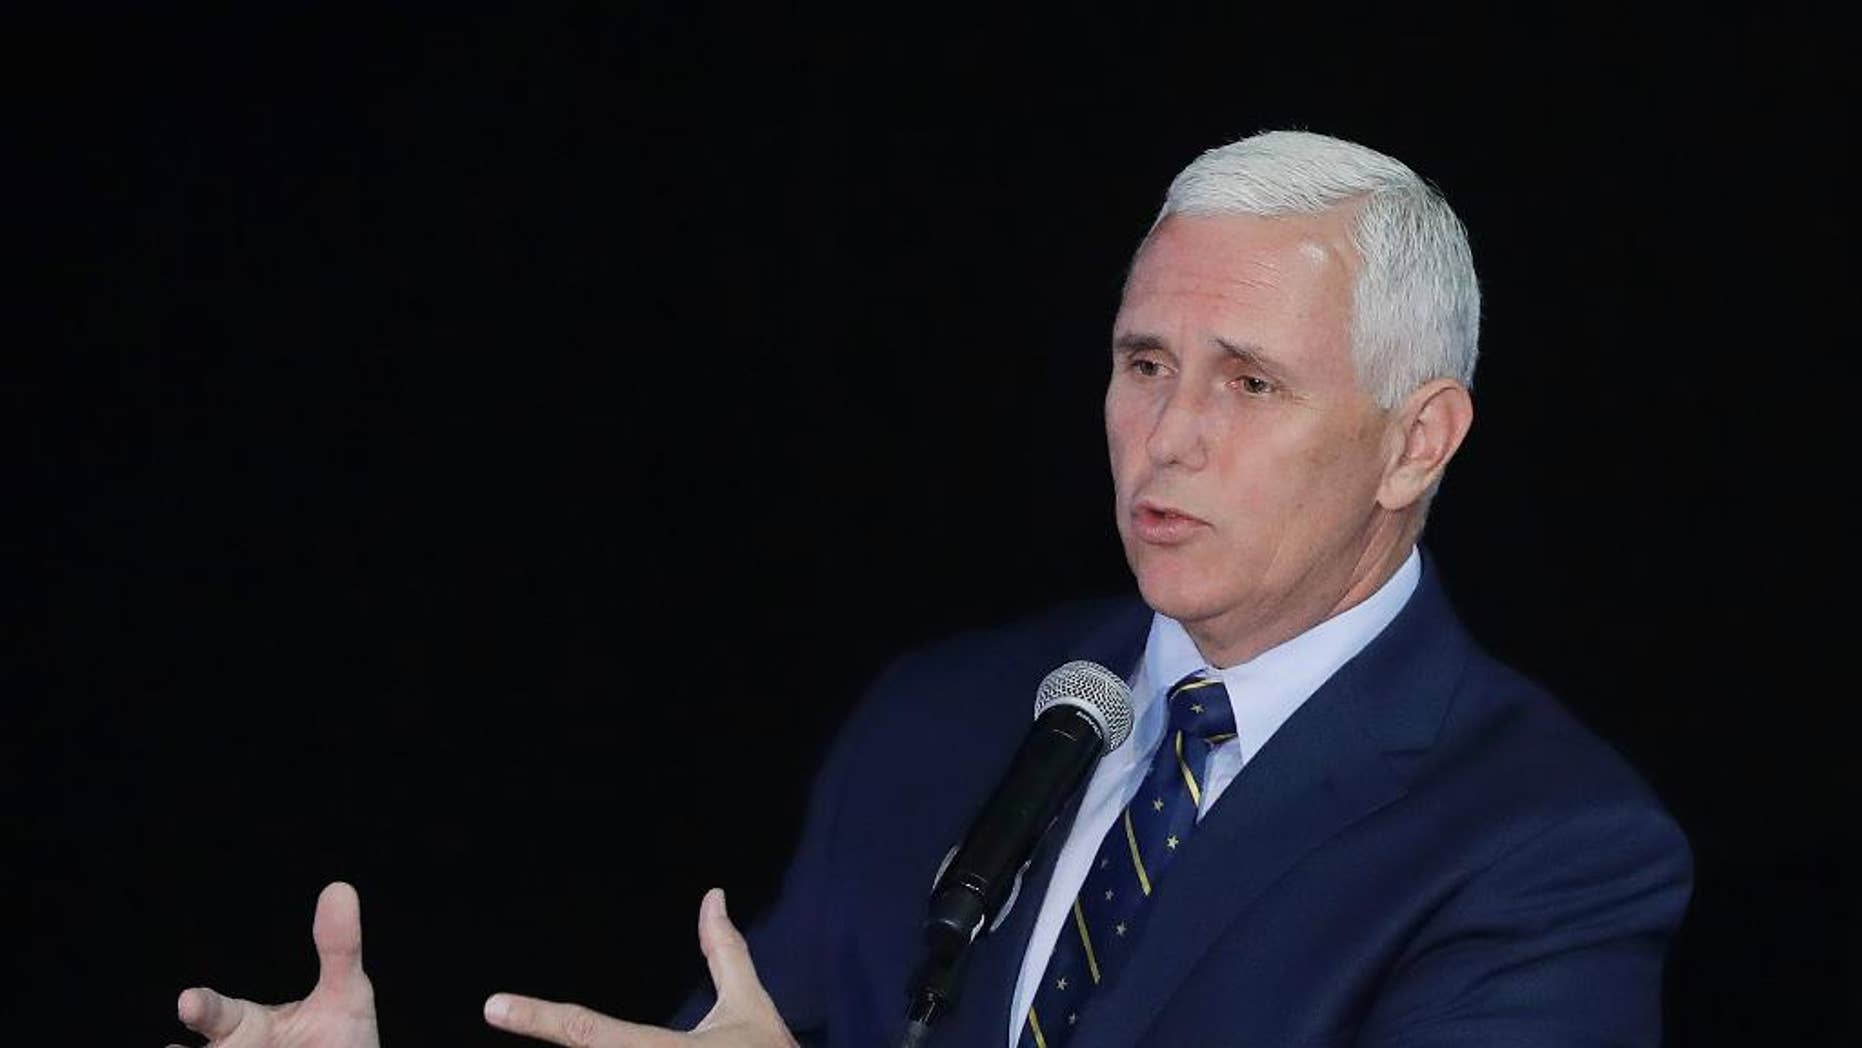 FILE - In this July 14, 2016 file photo, Indiana Gov. Mike Pence speaks in Indianapolis. Republican presidential candidate Donald Trump says on Twitter that he has picked Pence as his running mate. (AP Photo/Darron Cummings, File)